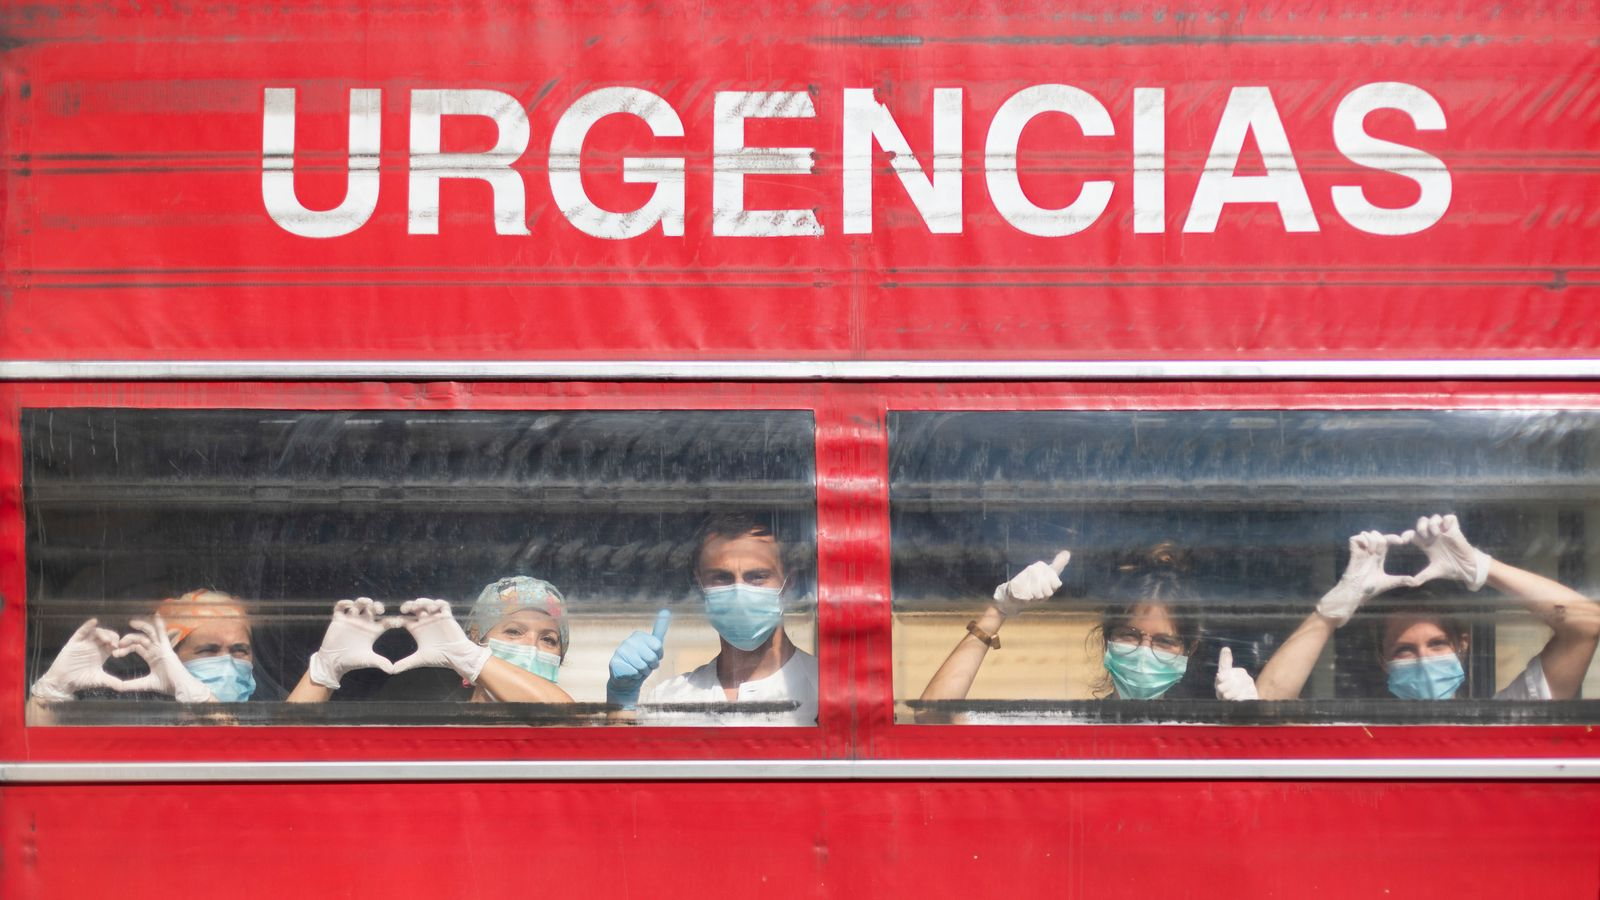 Coronavirus: Number of daily COVID-19 deaths in Spain continues to fall